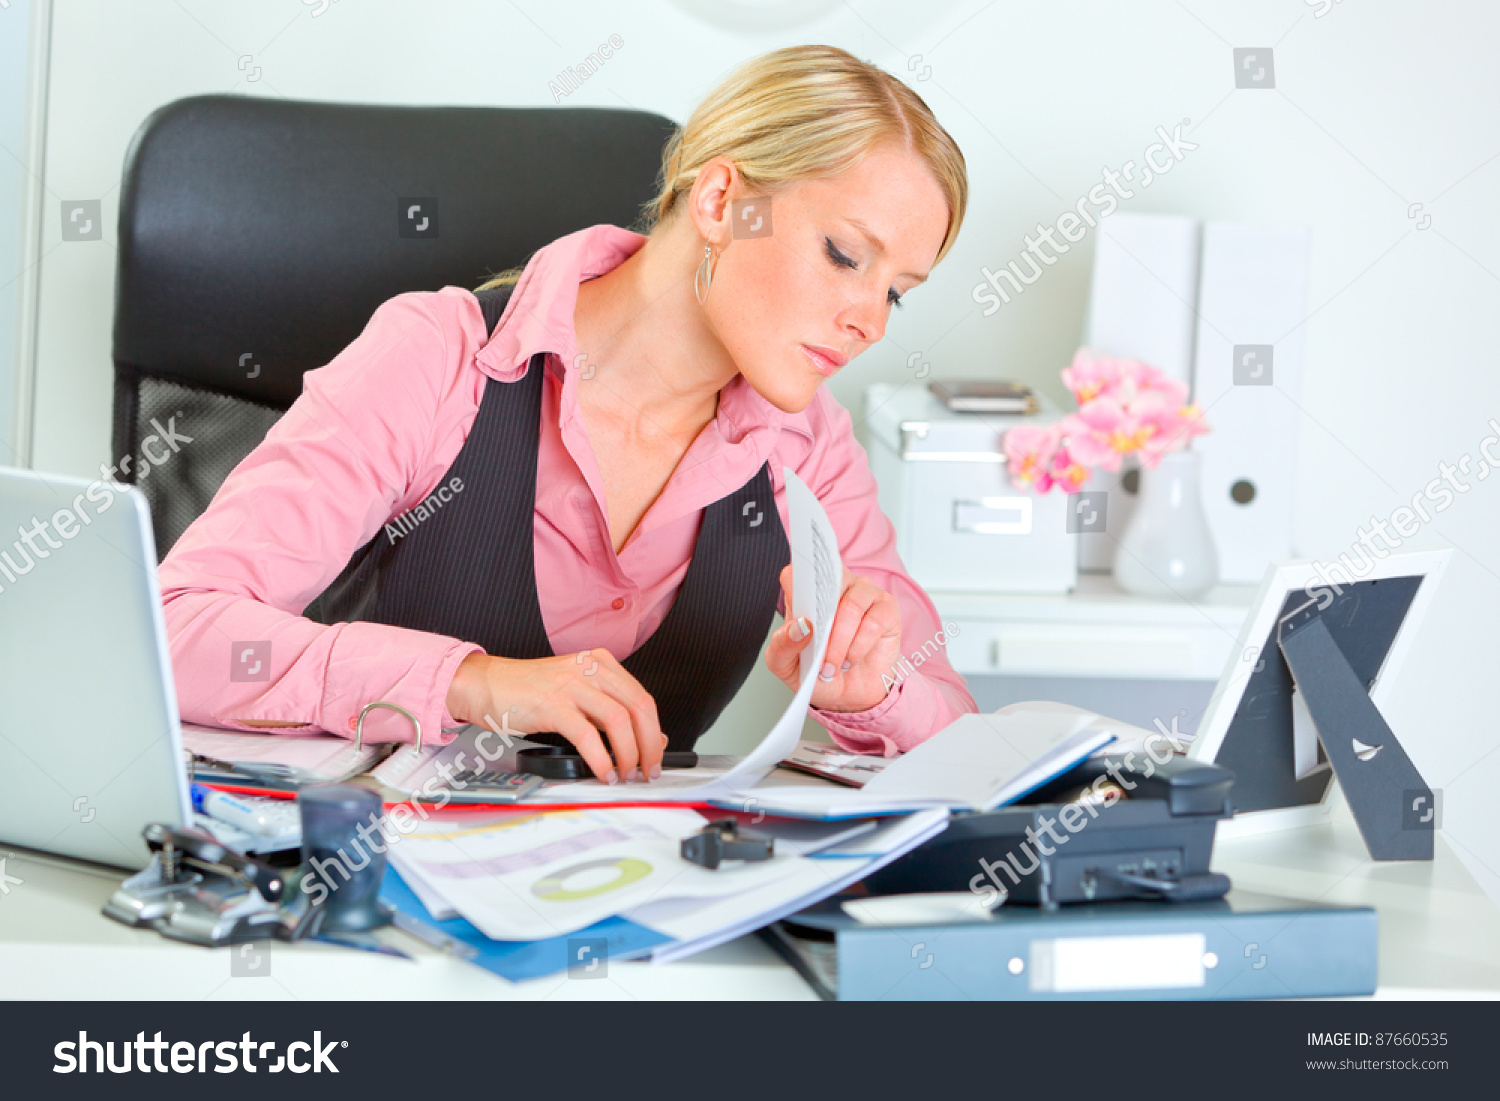 Hard Working On Documents Business Woman Stock Photo 87660535 : Shutterstock